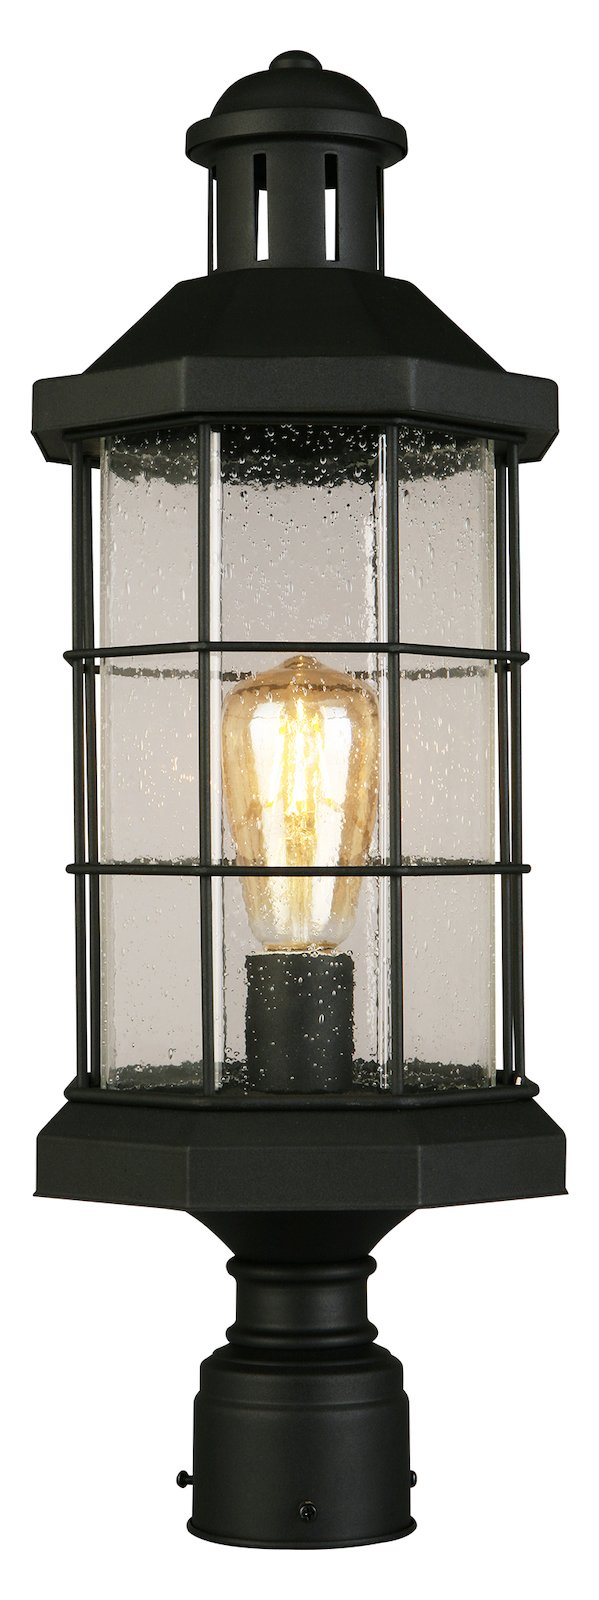 1X60W Outdoor Post Light W/ Matte Black Finish And Clear Seeded Glass